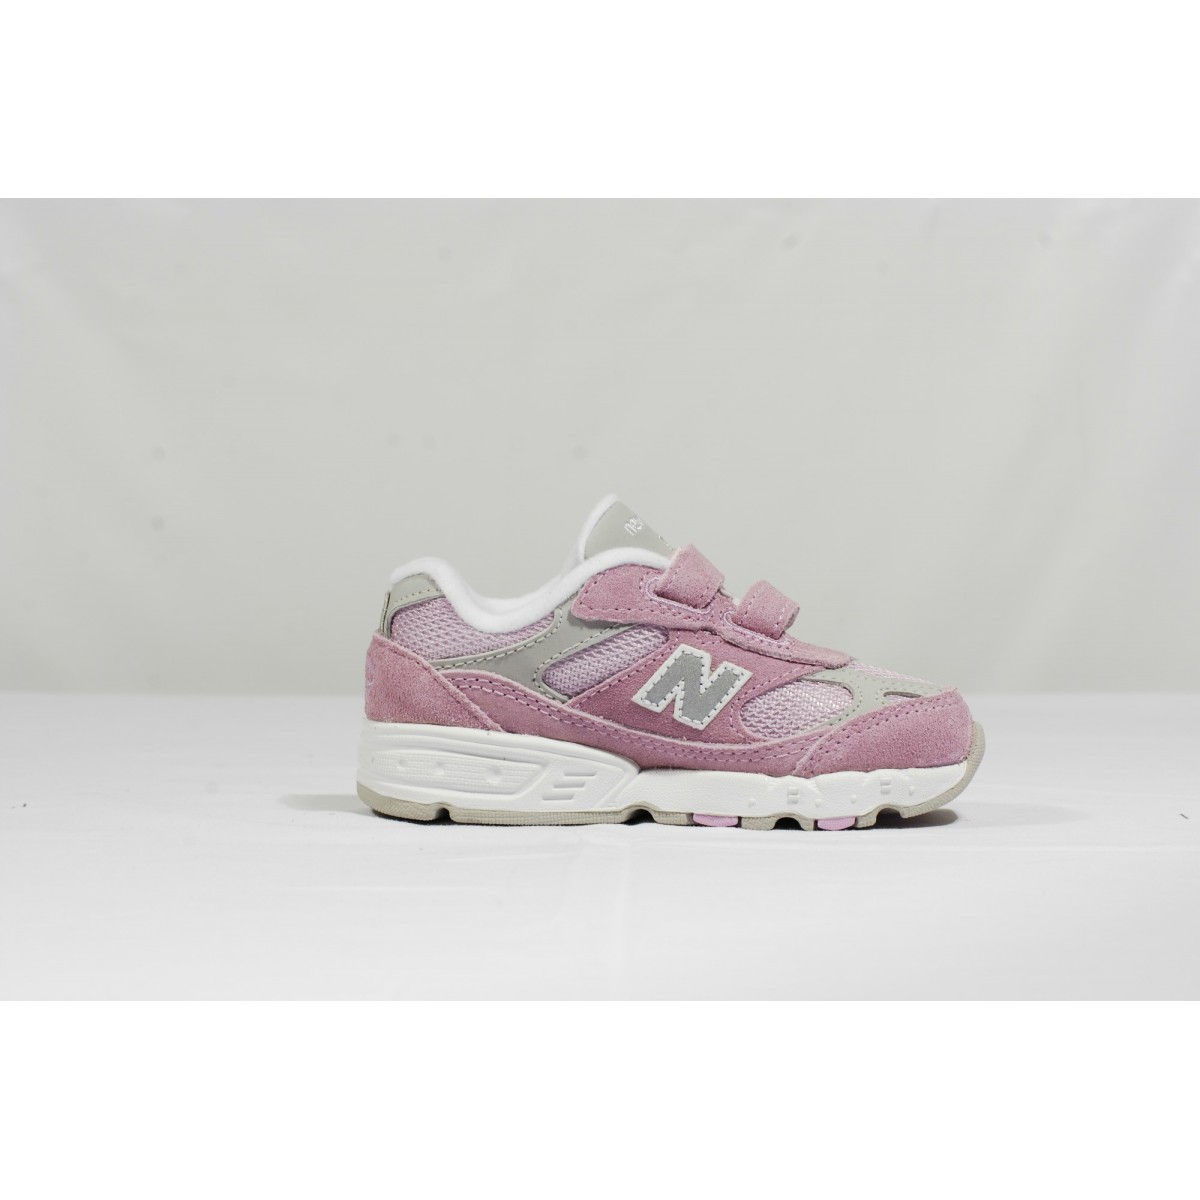 Scarpa New Balance - Kv993 Lip Preschool Girls Scarpa